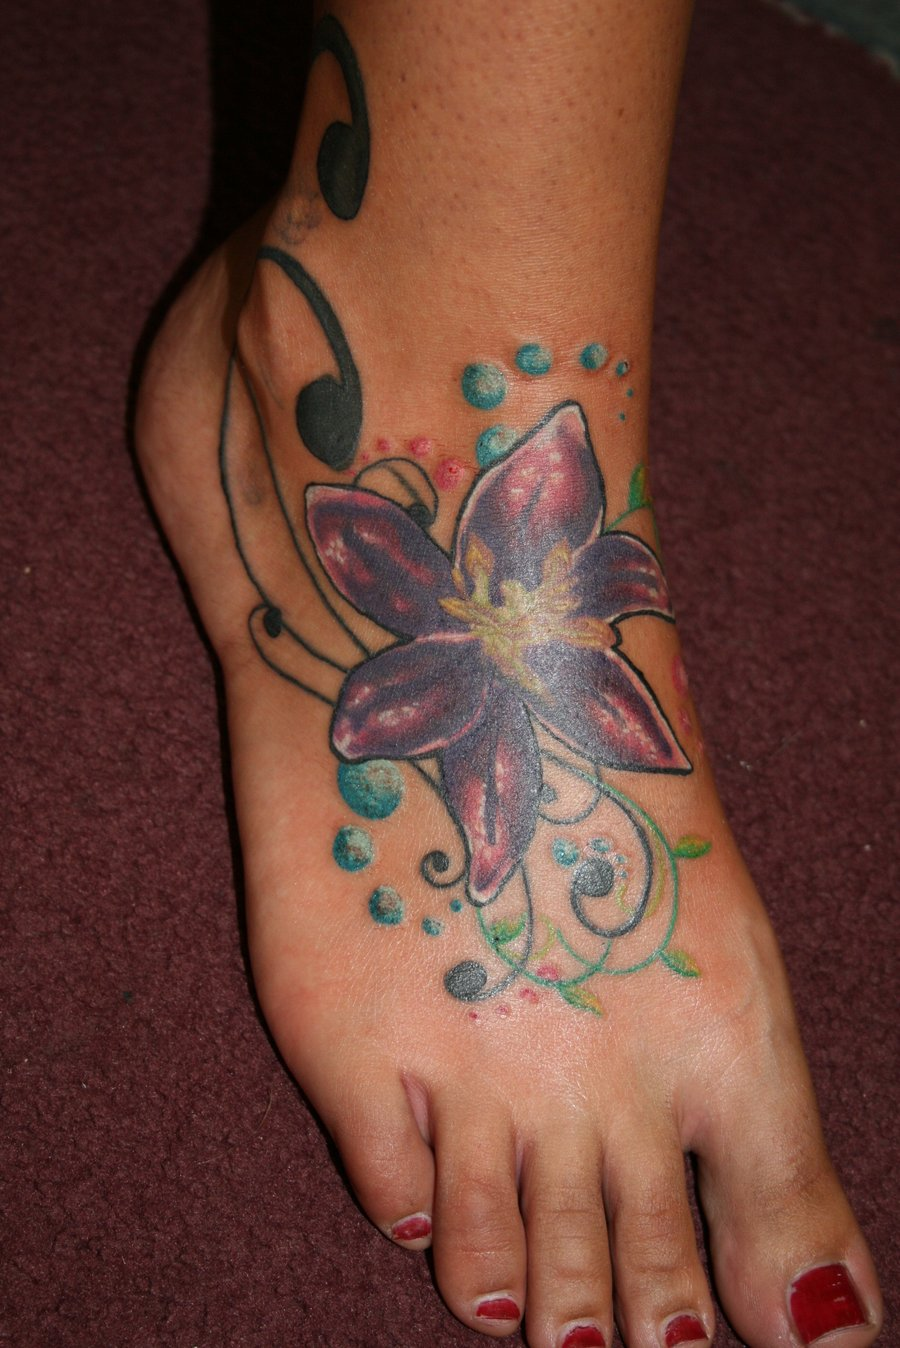 girls ankle tattoo designs world top fashions. Black Bedroom Furniture Sets. Home Design Ideas